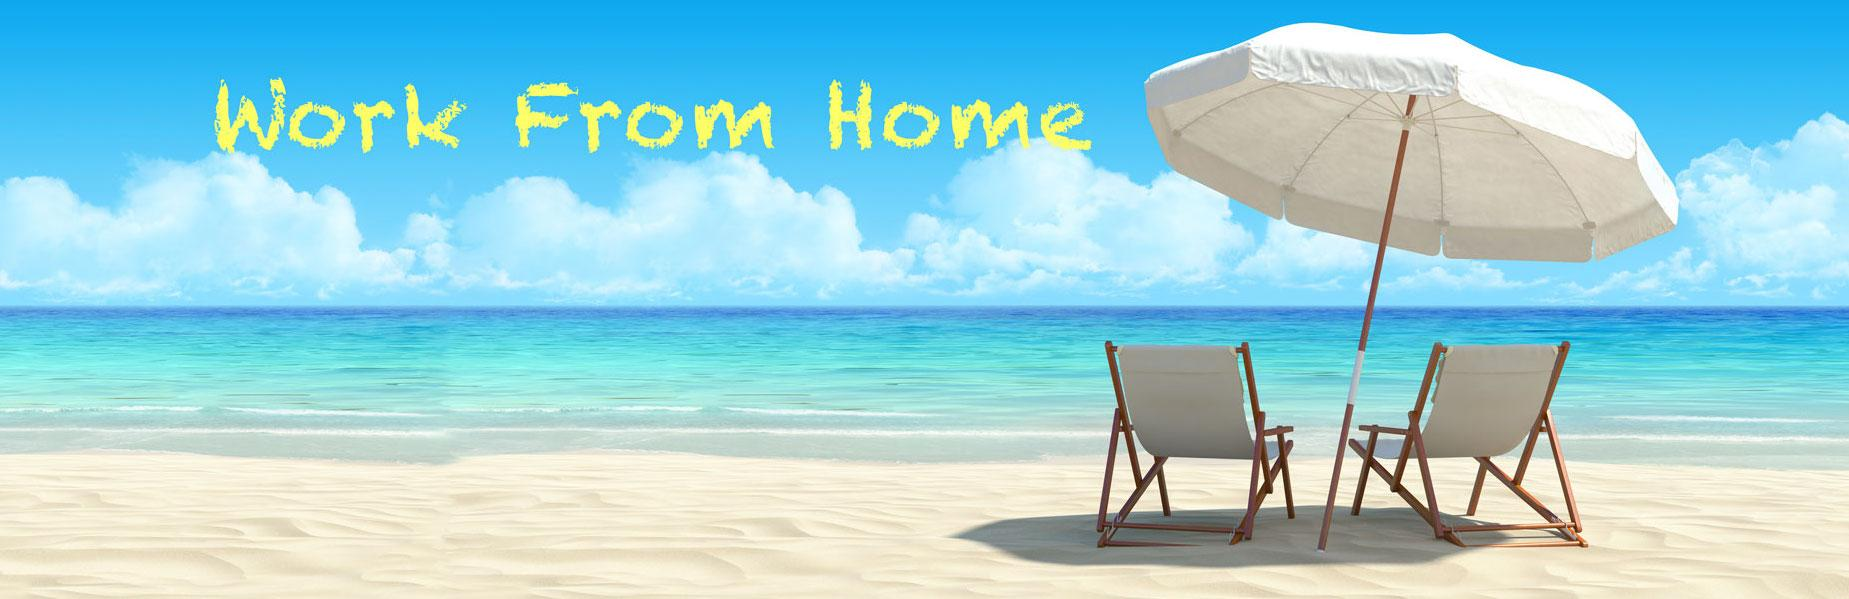 Careers Sales Work from Home - Mobile Home Careers